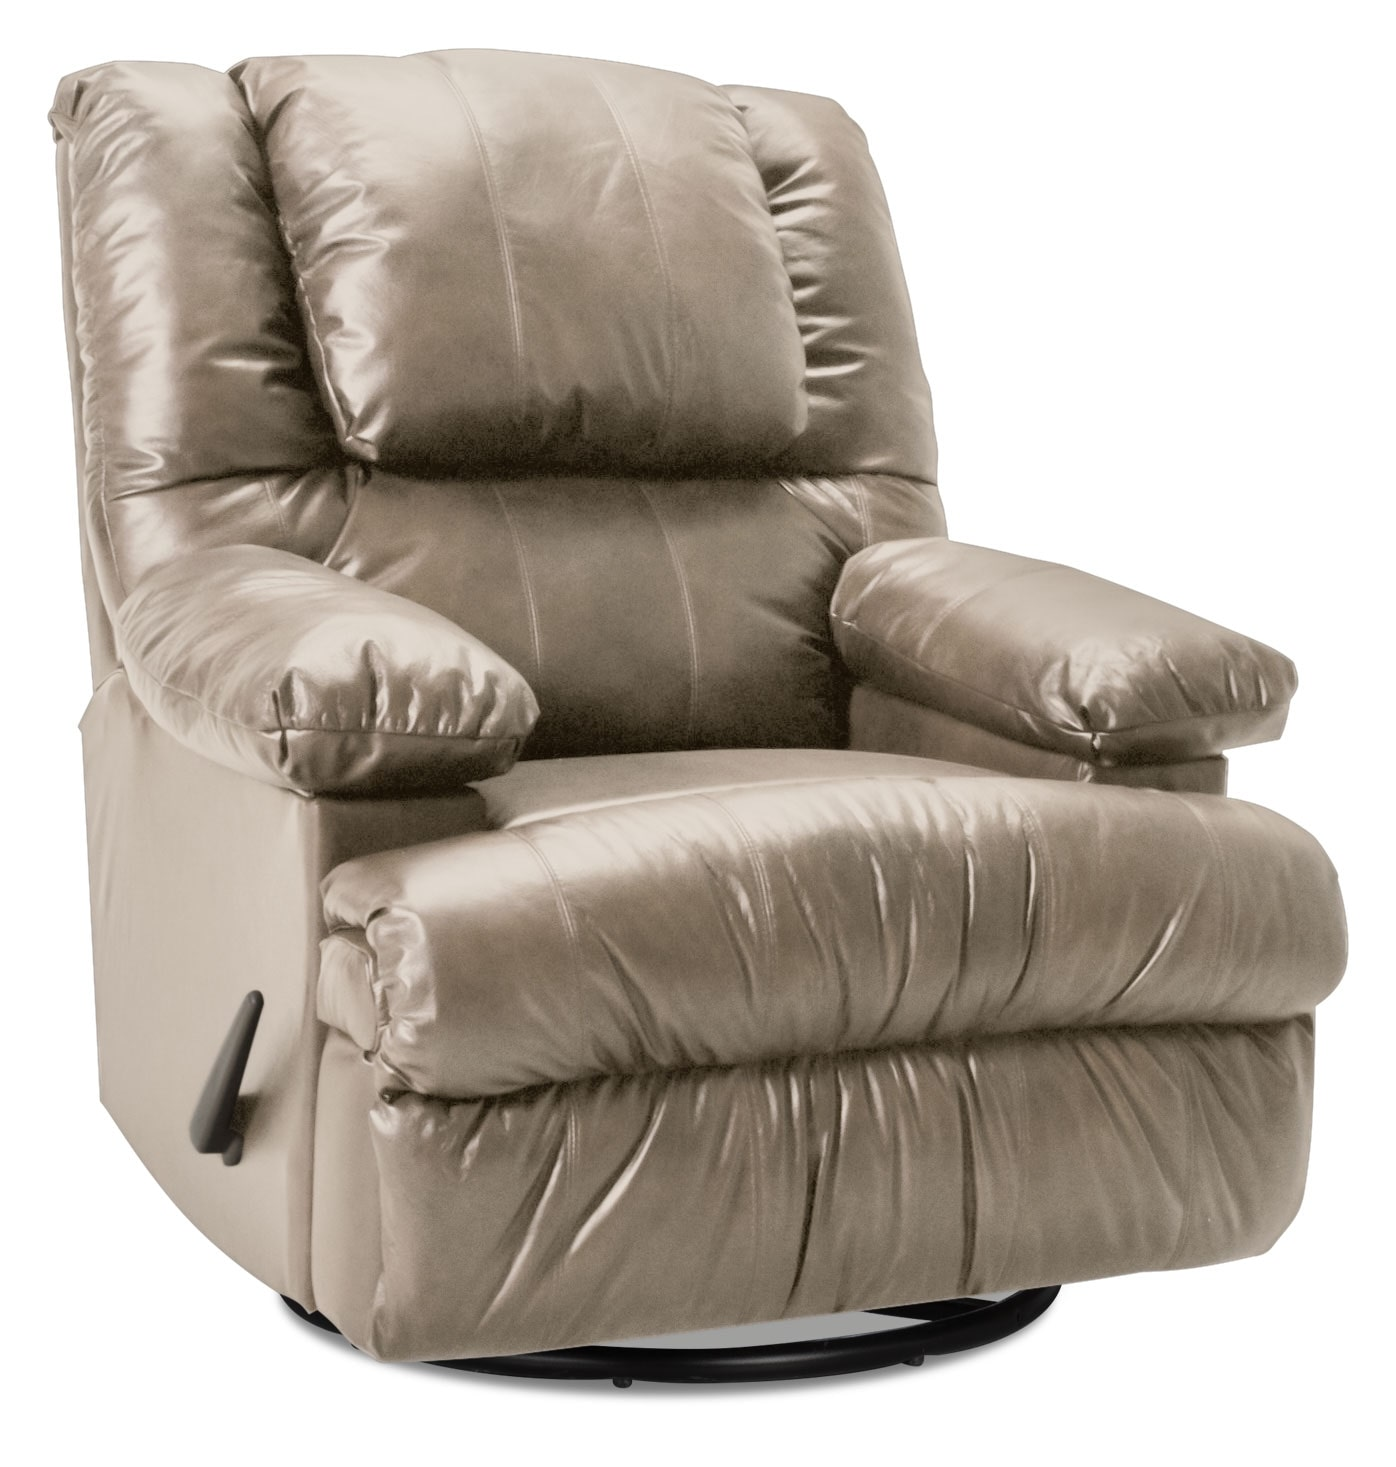 Designed2B Recliner 5598 Bonded Leather Swivel Rocker With Storage Arms Put